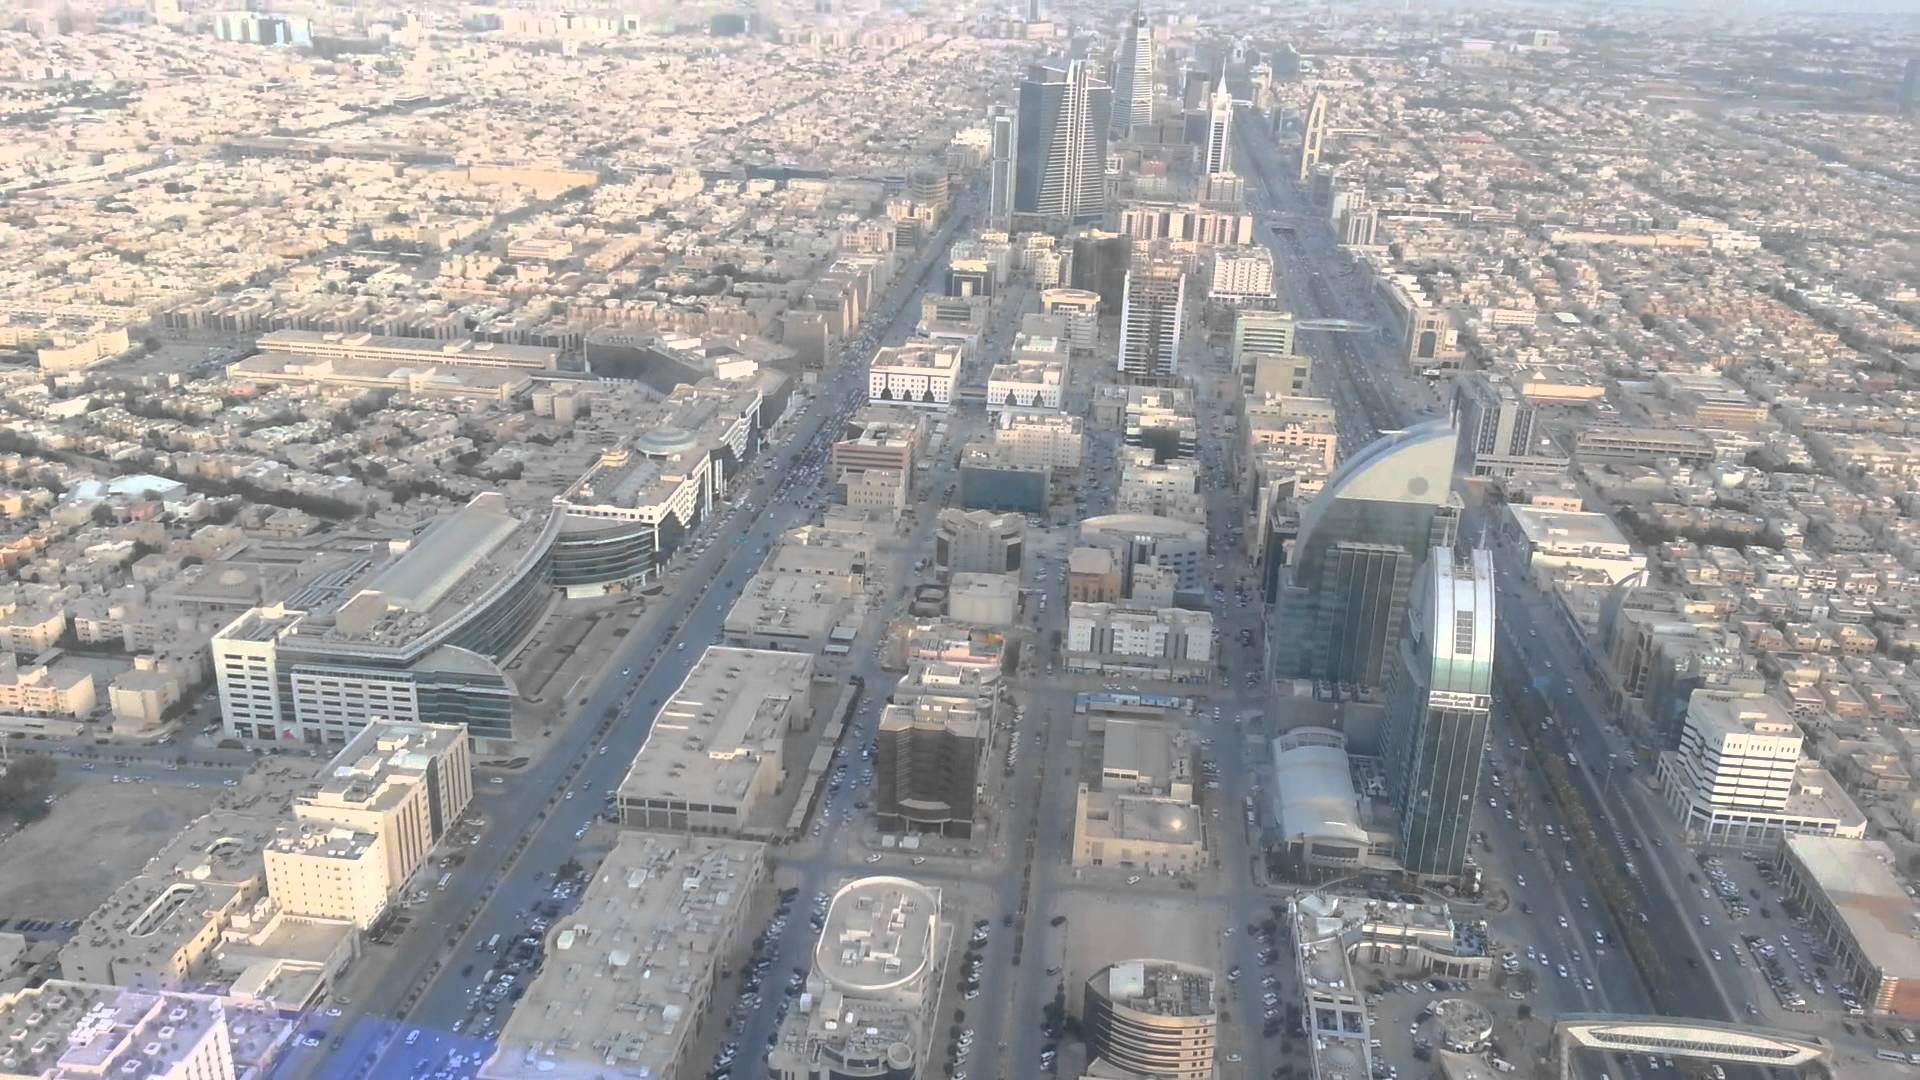 Sky Bridge Riyadh, Sky Bridge, Kingdom Tower, Riyadh, Saudi Arabia - YouTube